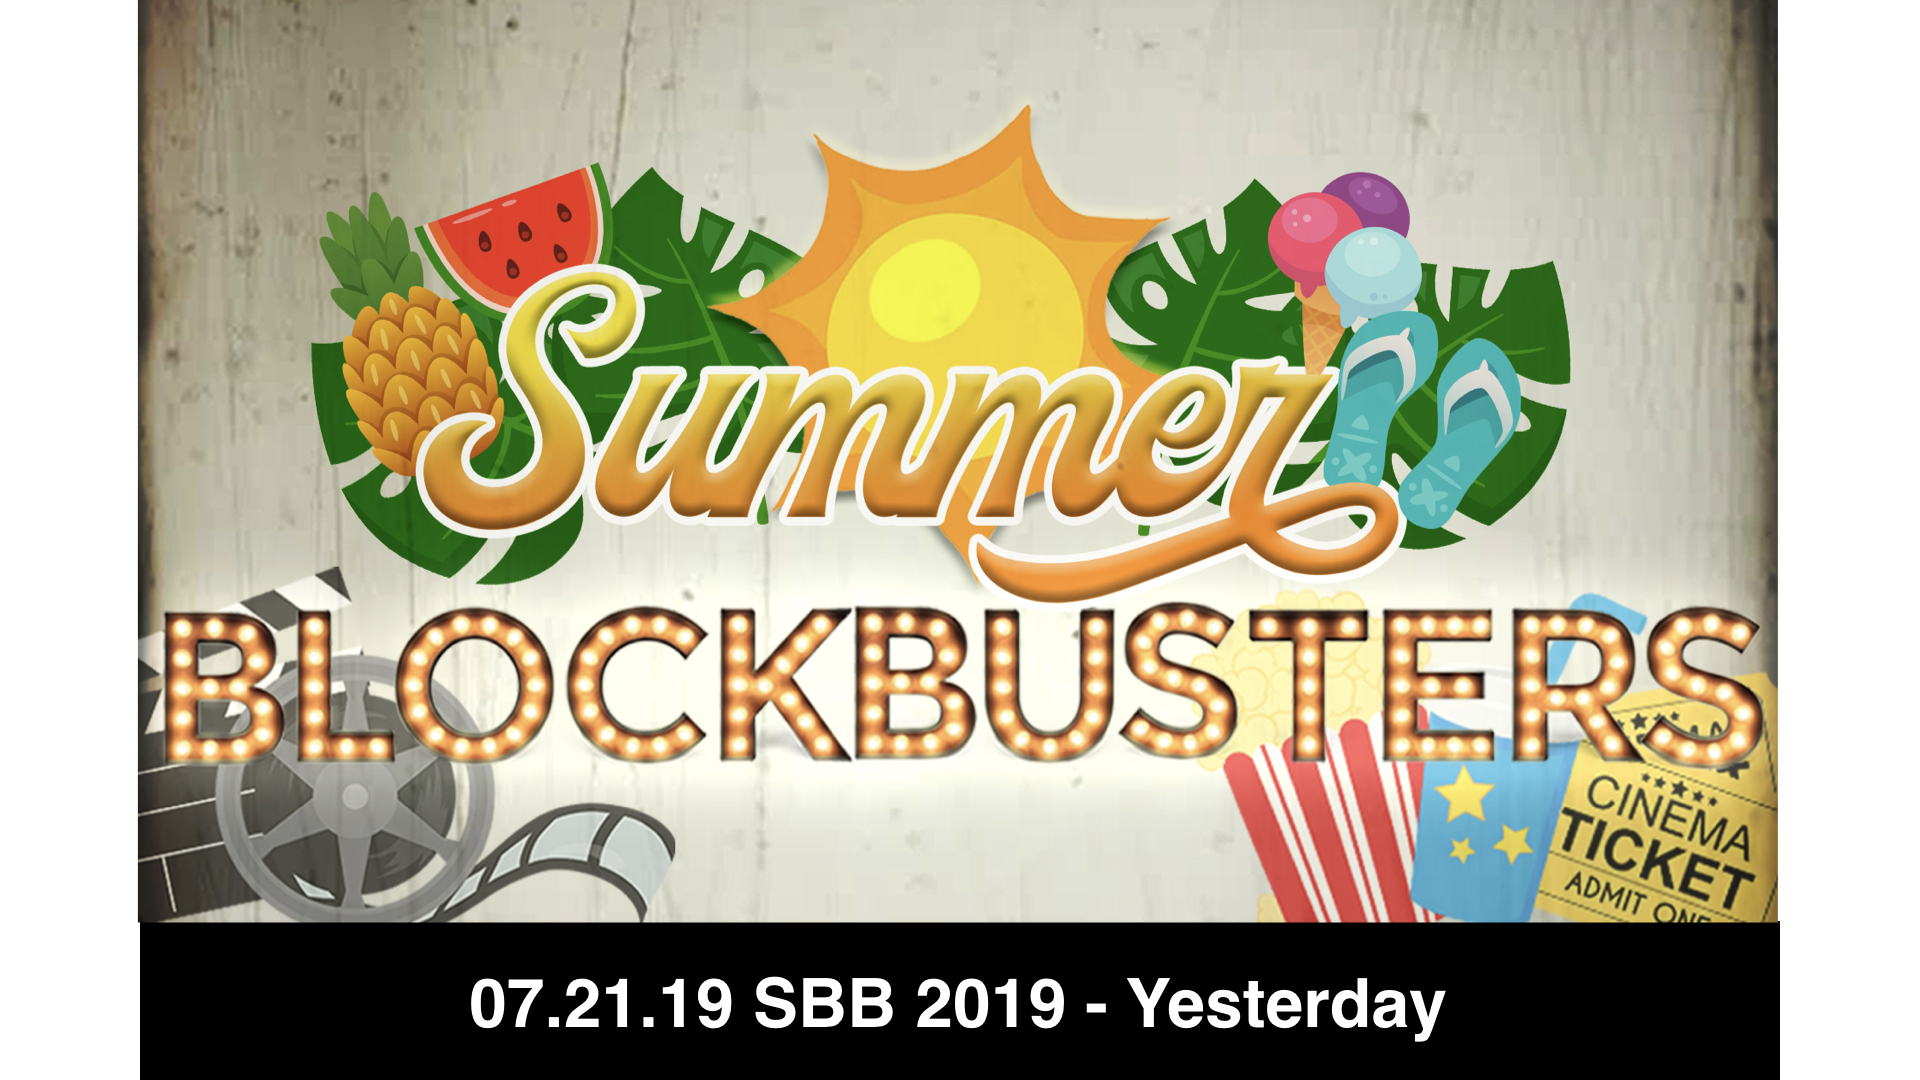 07.21.19 SBB 2019 - 9 Yesterday